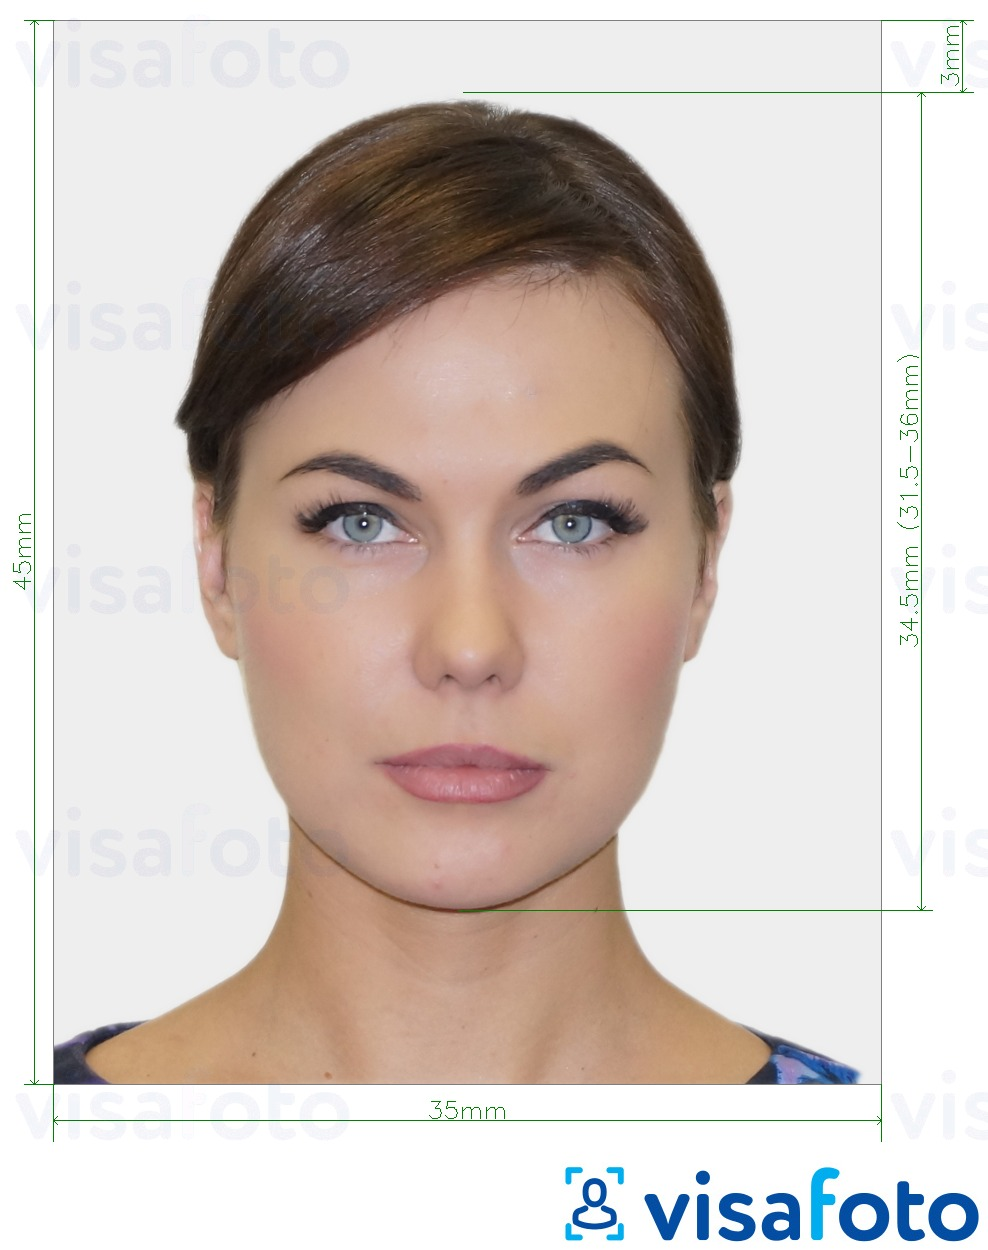 Example of photo for Norway Passport with exact size specification